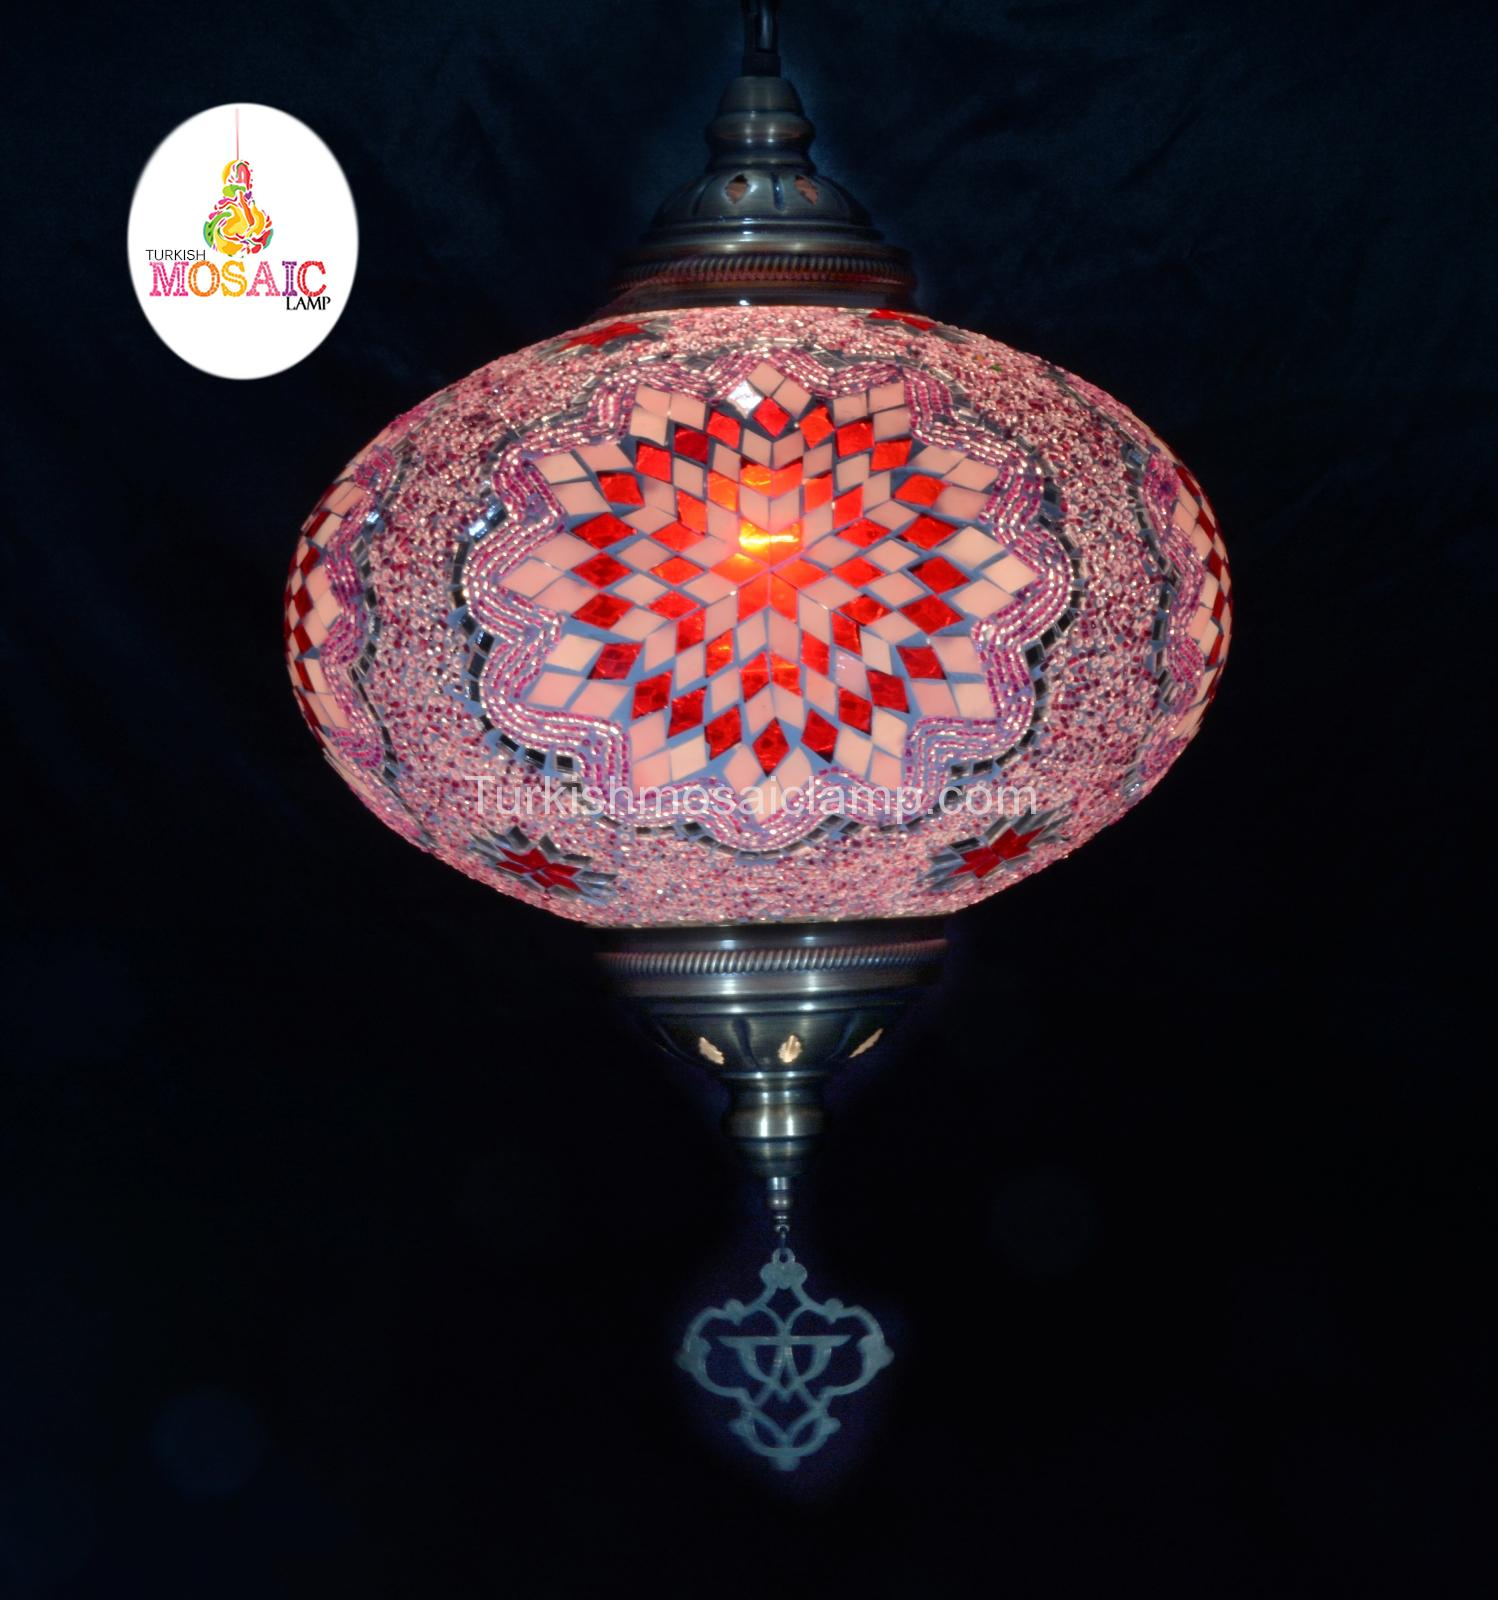 Ceiling mosaic lamp size 6